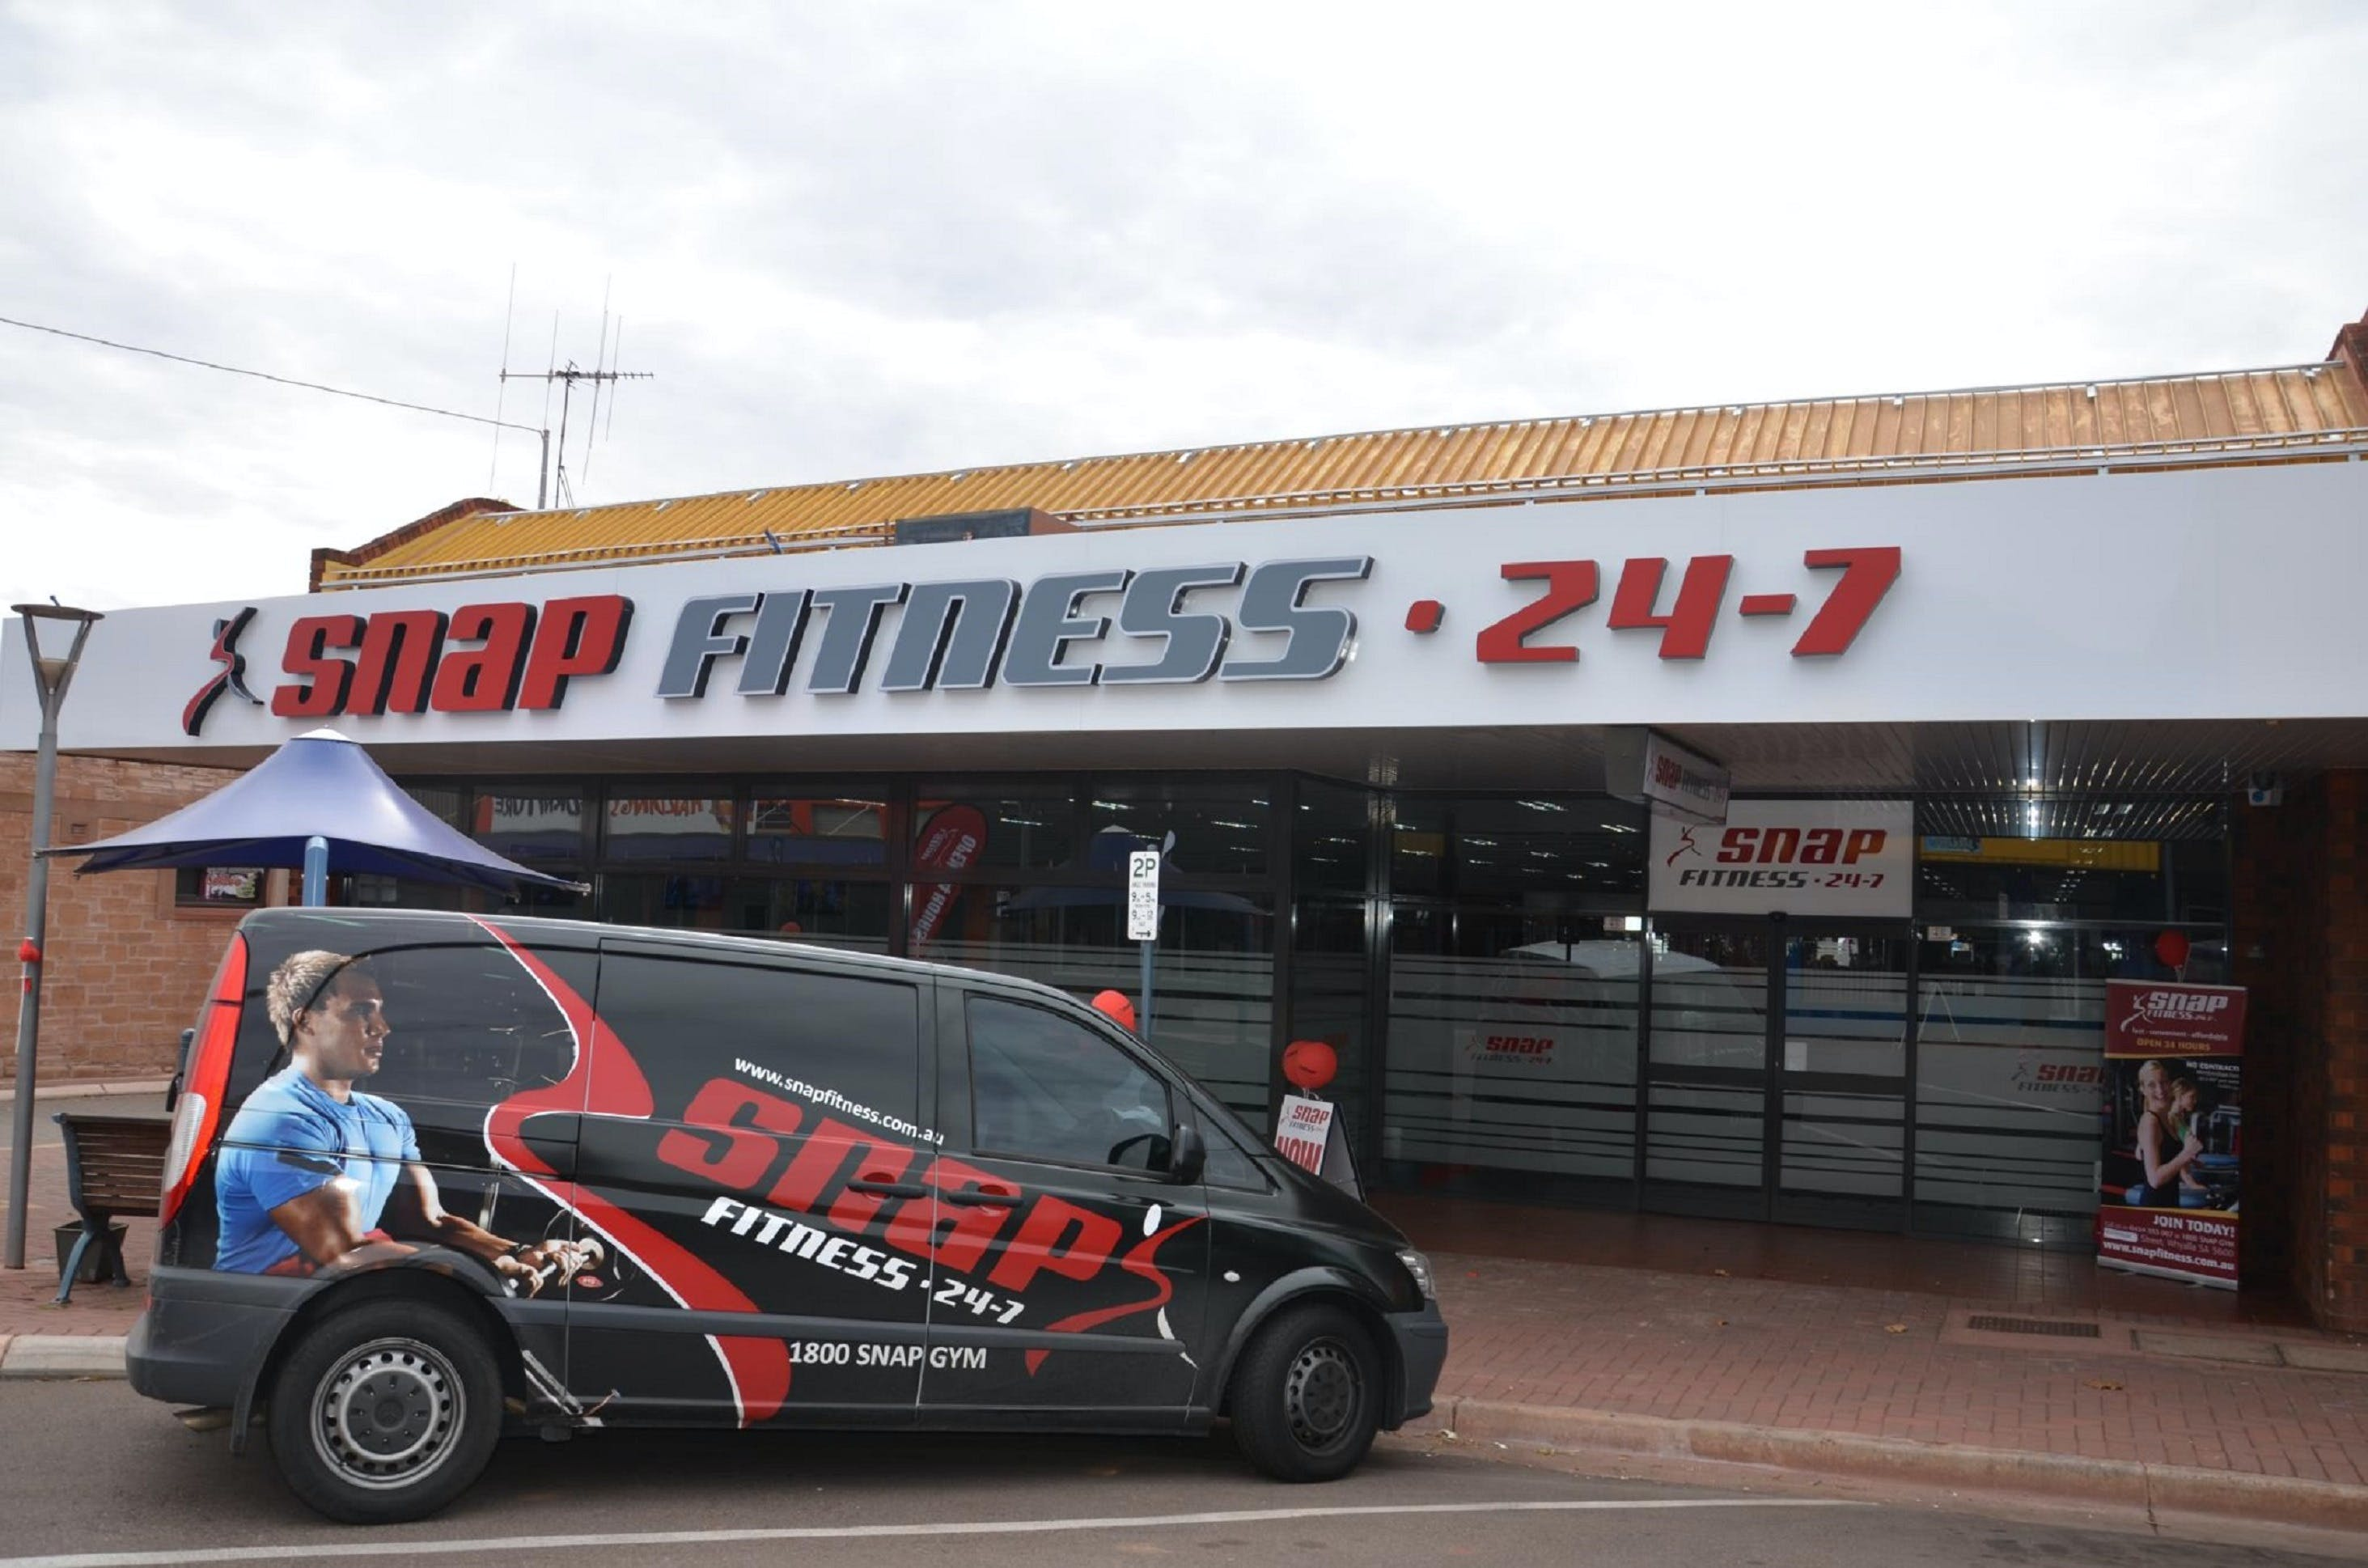 Snap Fitness Whyalla 24/7 gym - Accommodation Mt Buller